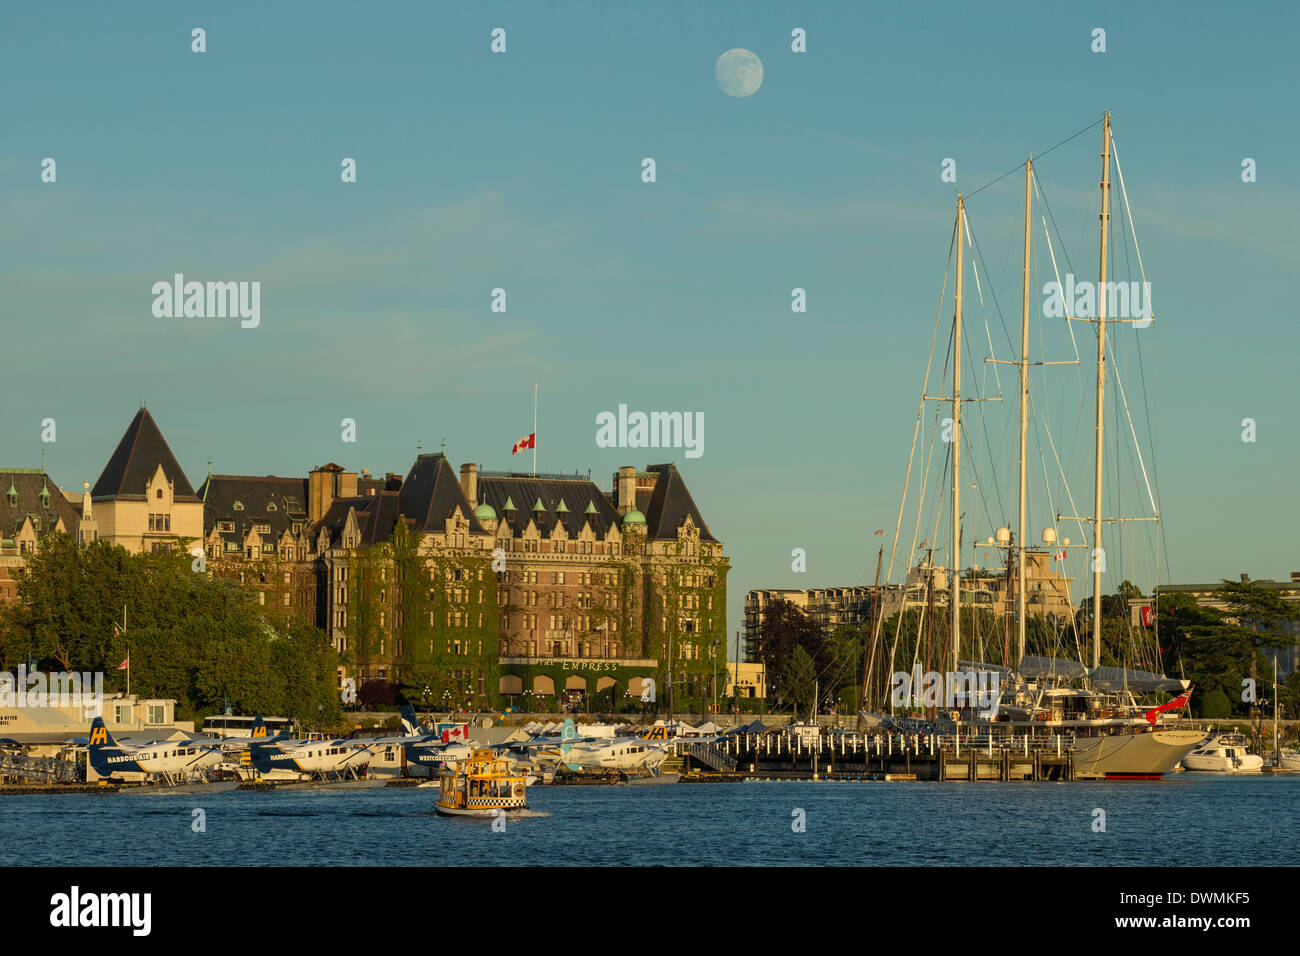 Nearly Full moon rising behind Empress hotel and Inner harbor-Victoria, British Columbia, Canada. Stock Photo